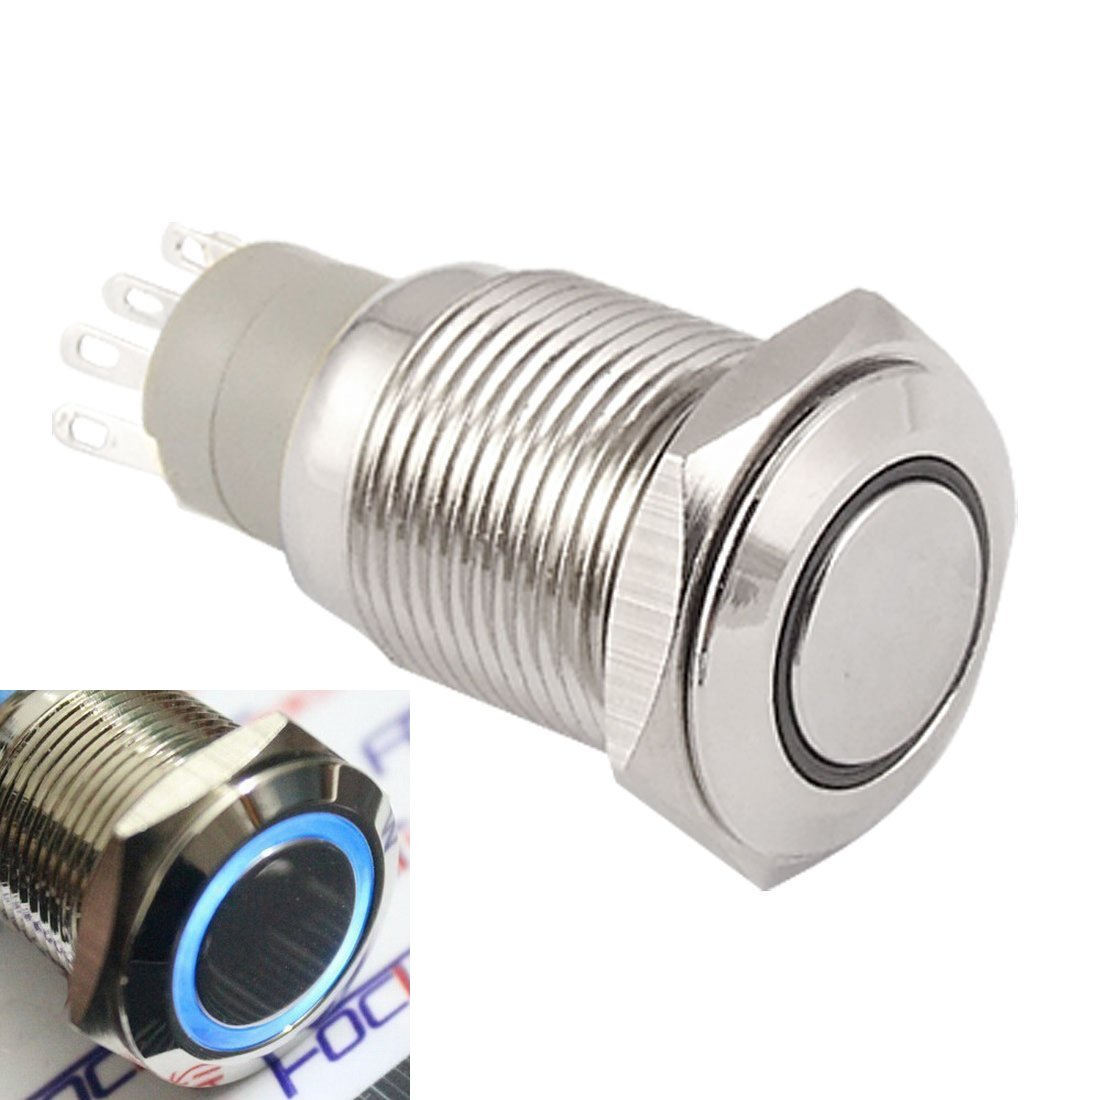 WerFamily Angel Eye Blue LED 16mm 12V 1NO1NC 5 Pins Push Button Switches Stainless Steel Round Metal Resetable Momentary Type (Pack of 2)